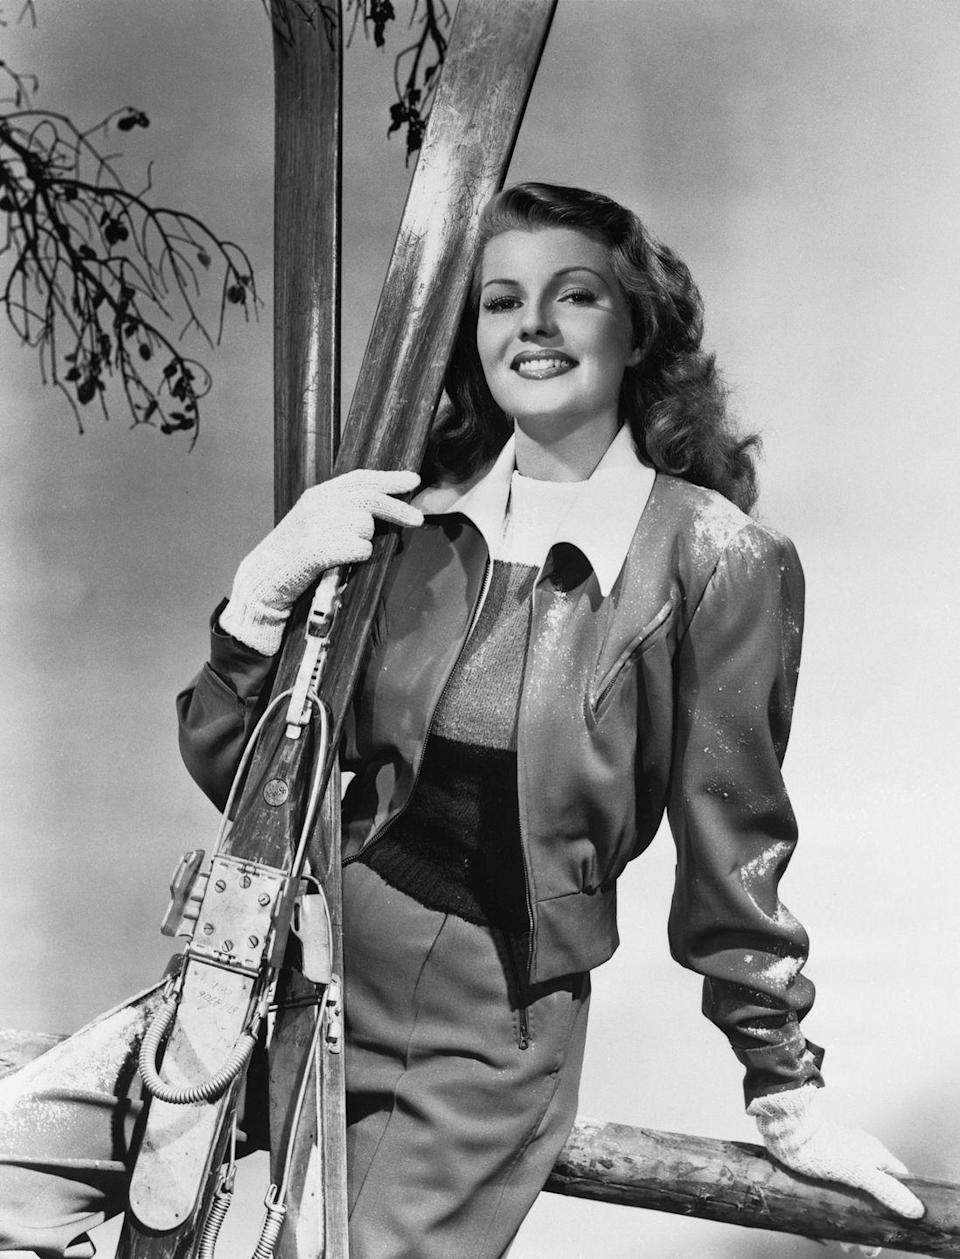 <p>Rita Hayworth looks ready for the slopes with her skis and gloves, circa 1940. </p>